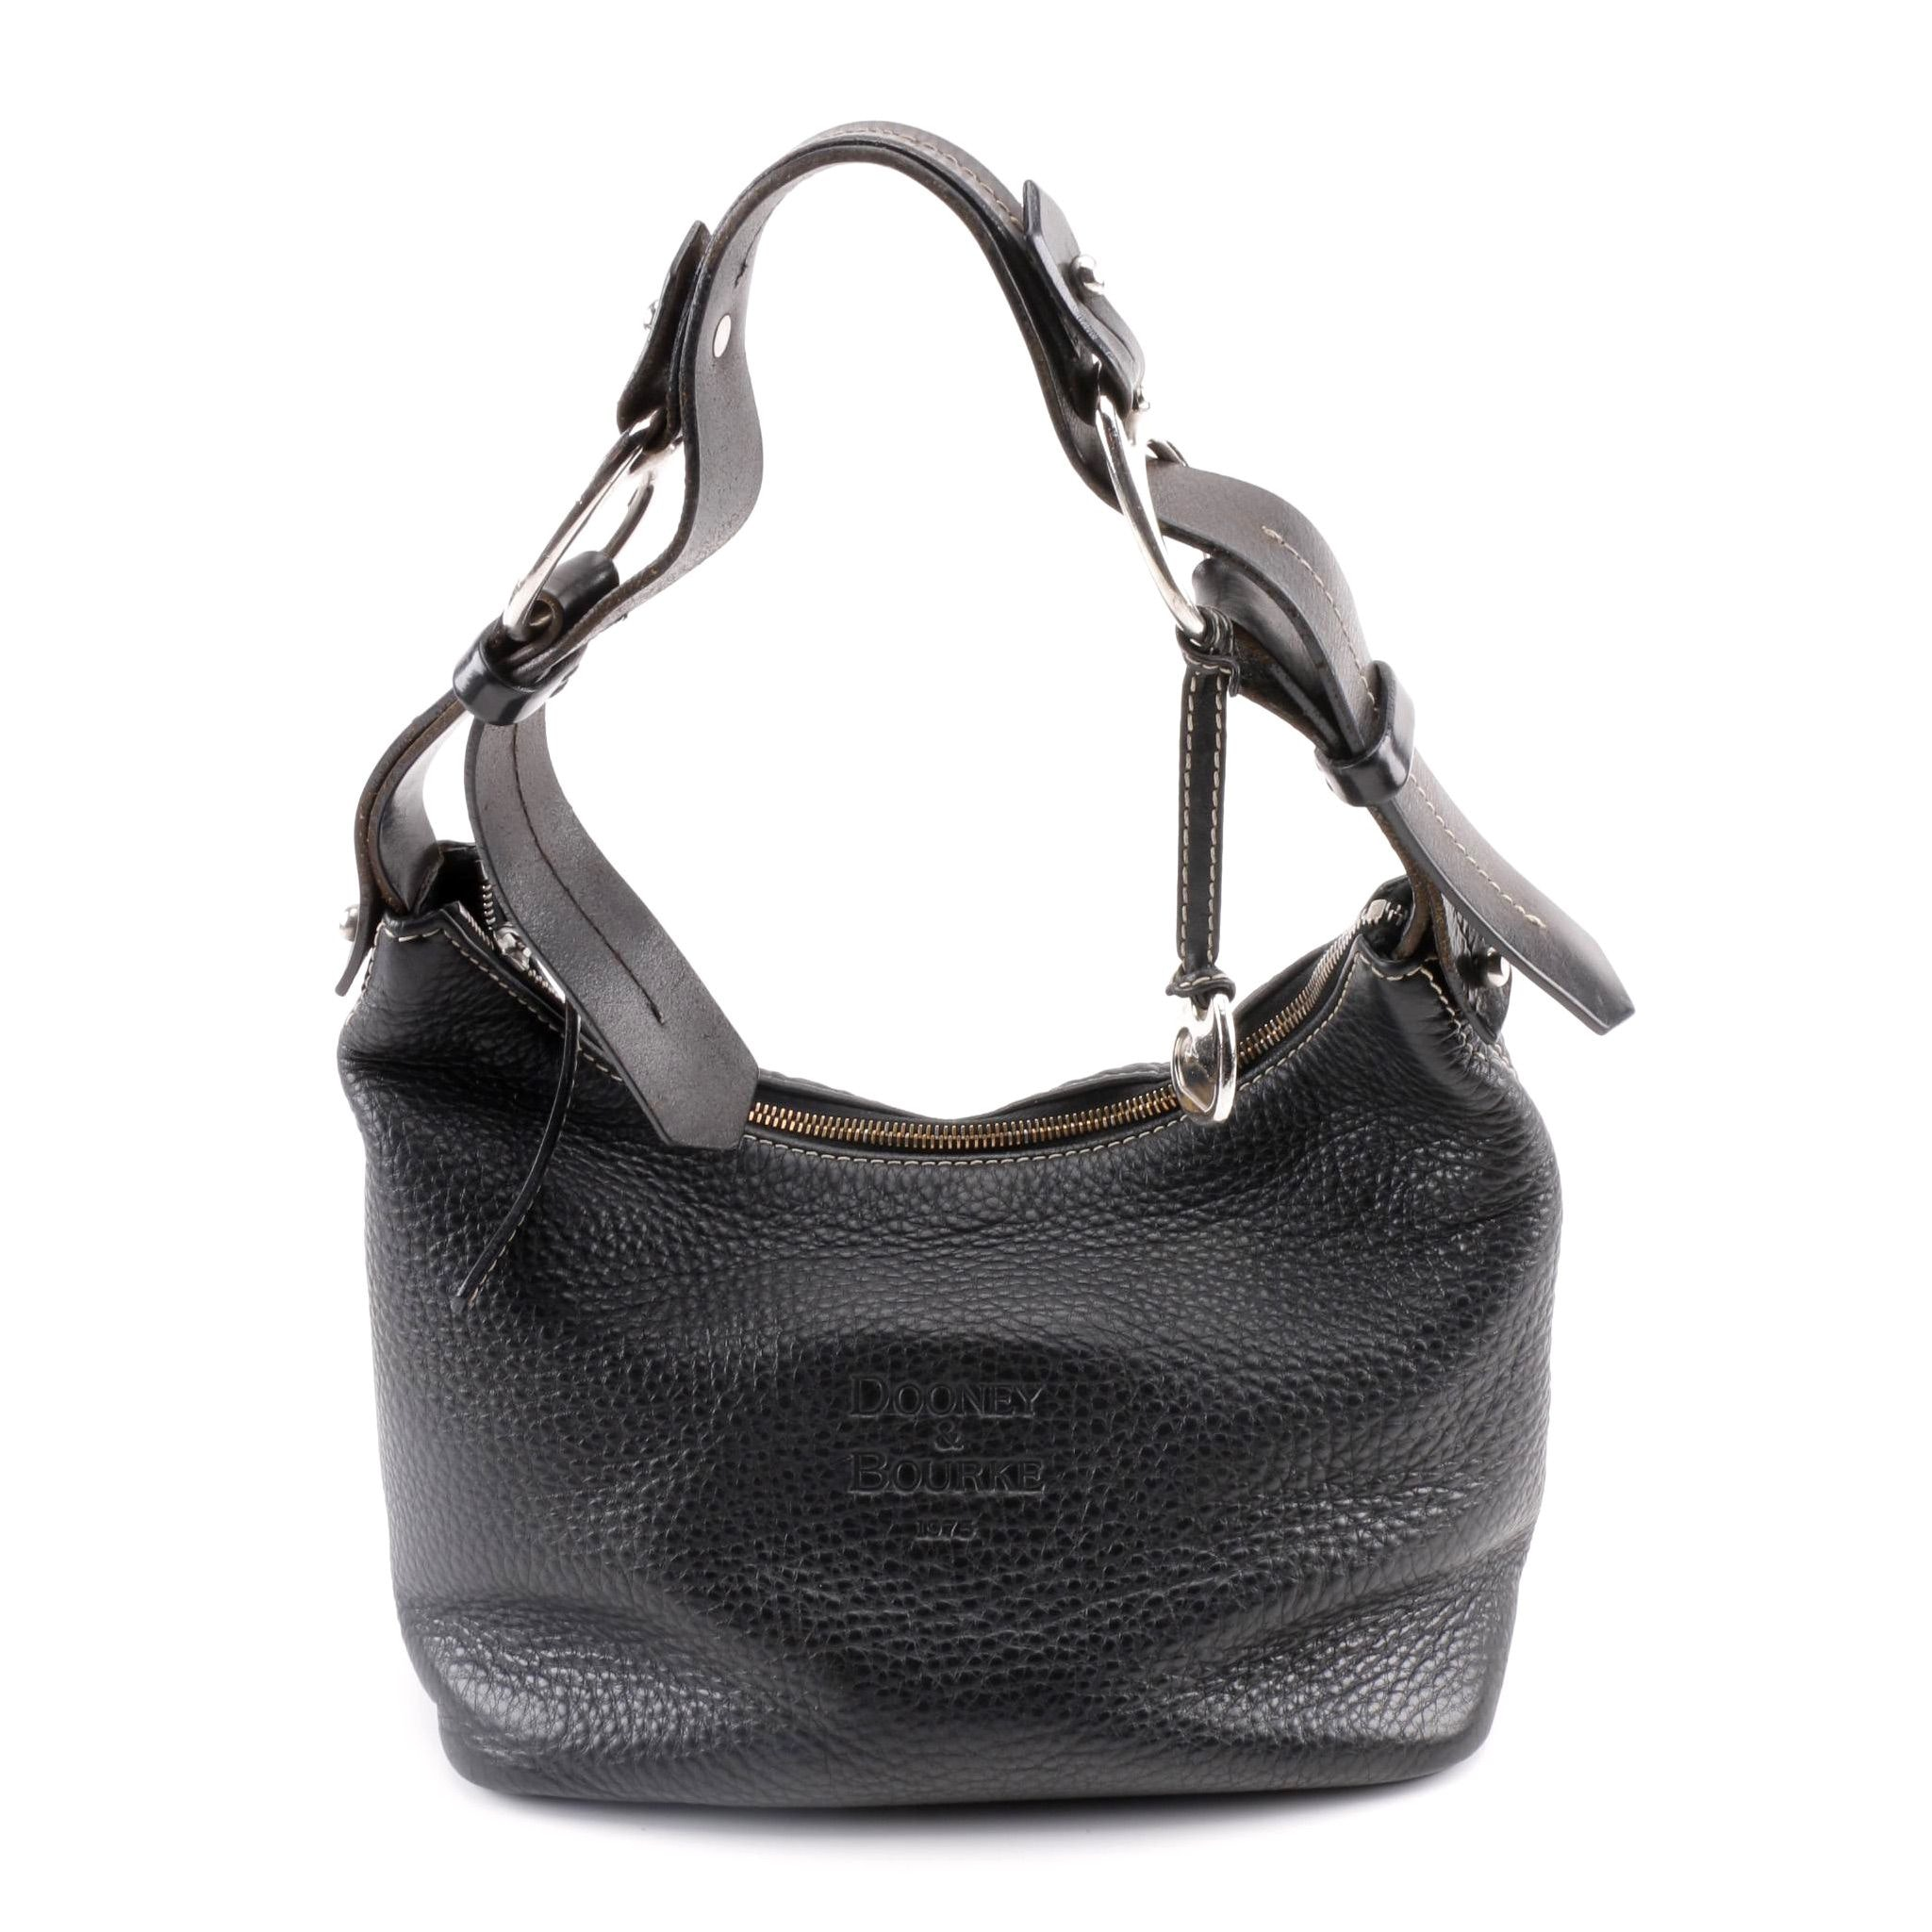 Dooney & Bourke Black Pebbled Leather Hobo Bag